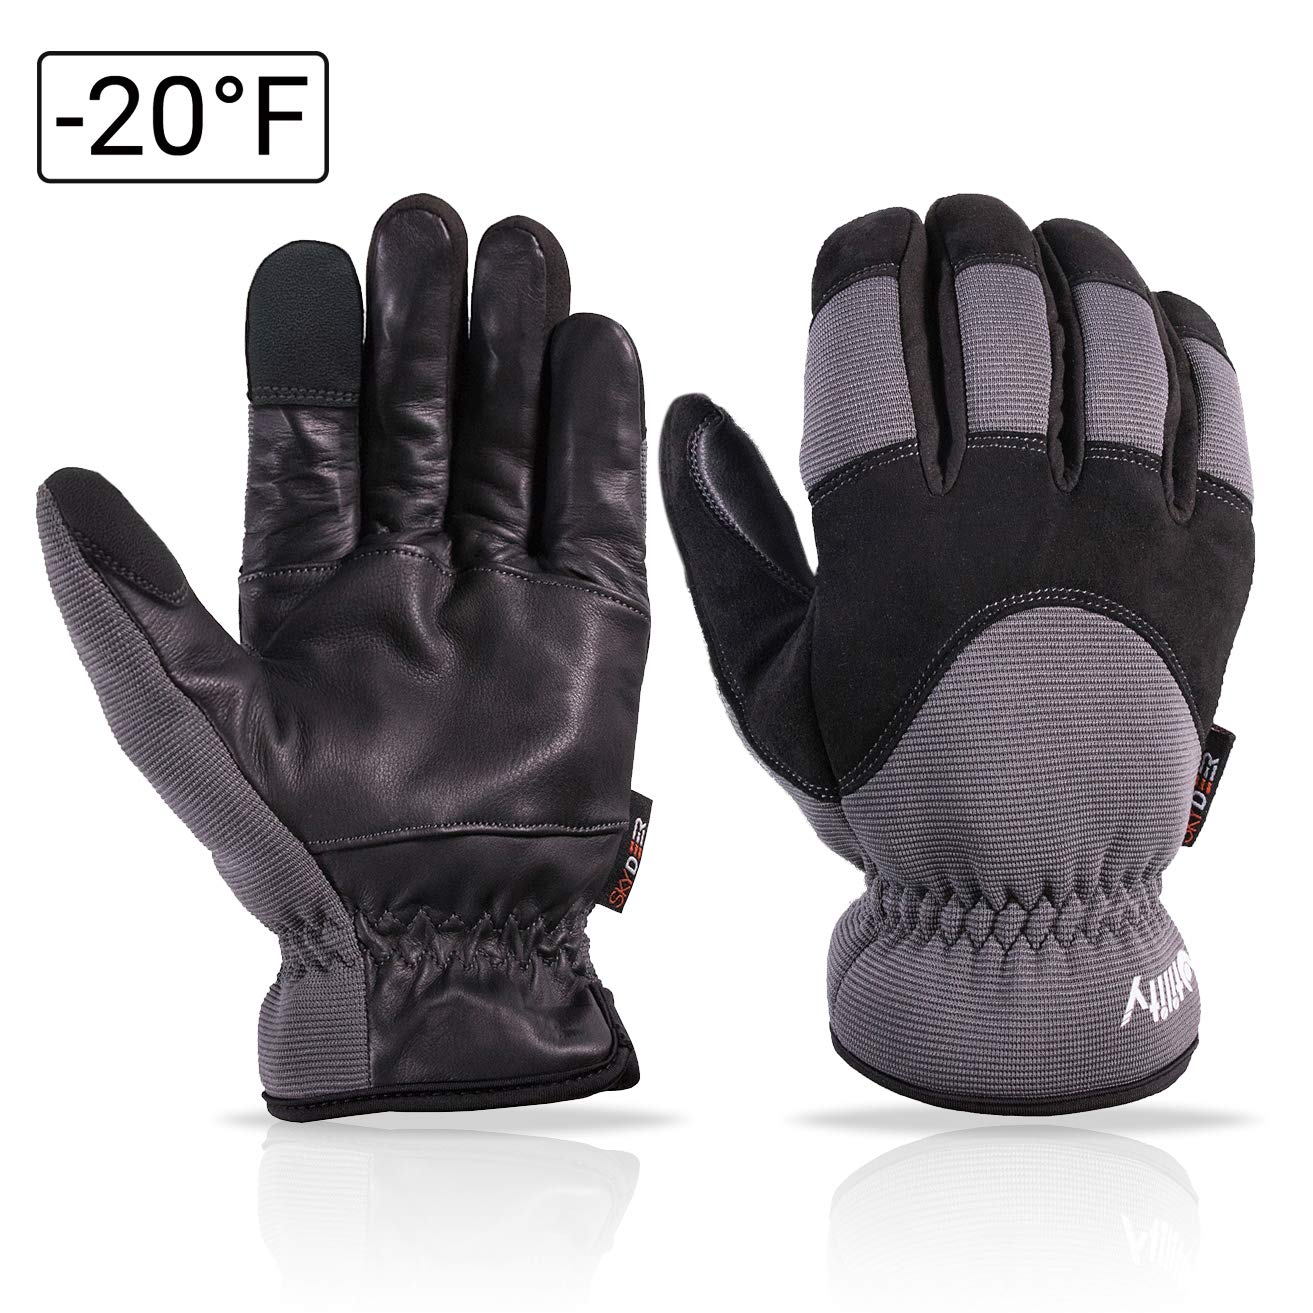 SKYDEER Genuine Leather Hybrid Winter Touch Screen Gloves with Thermal Fleece Insulation (SD2240T) SKYDEER CO.